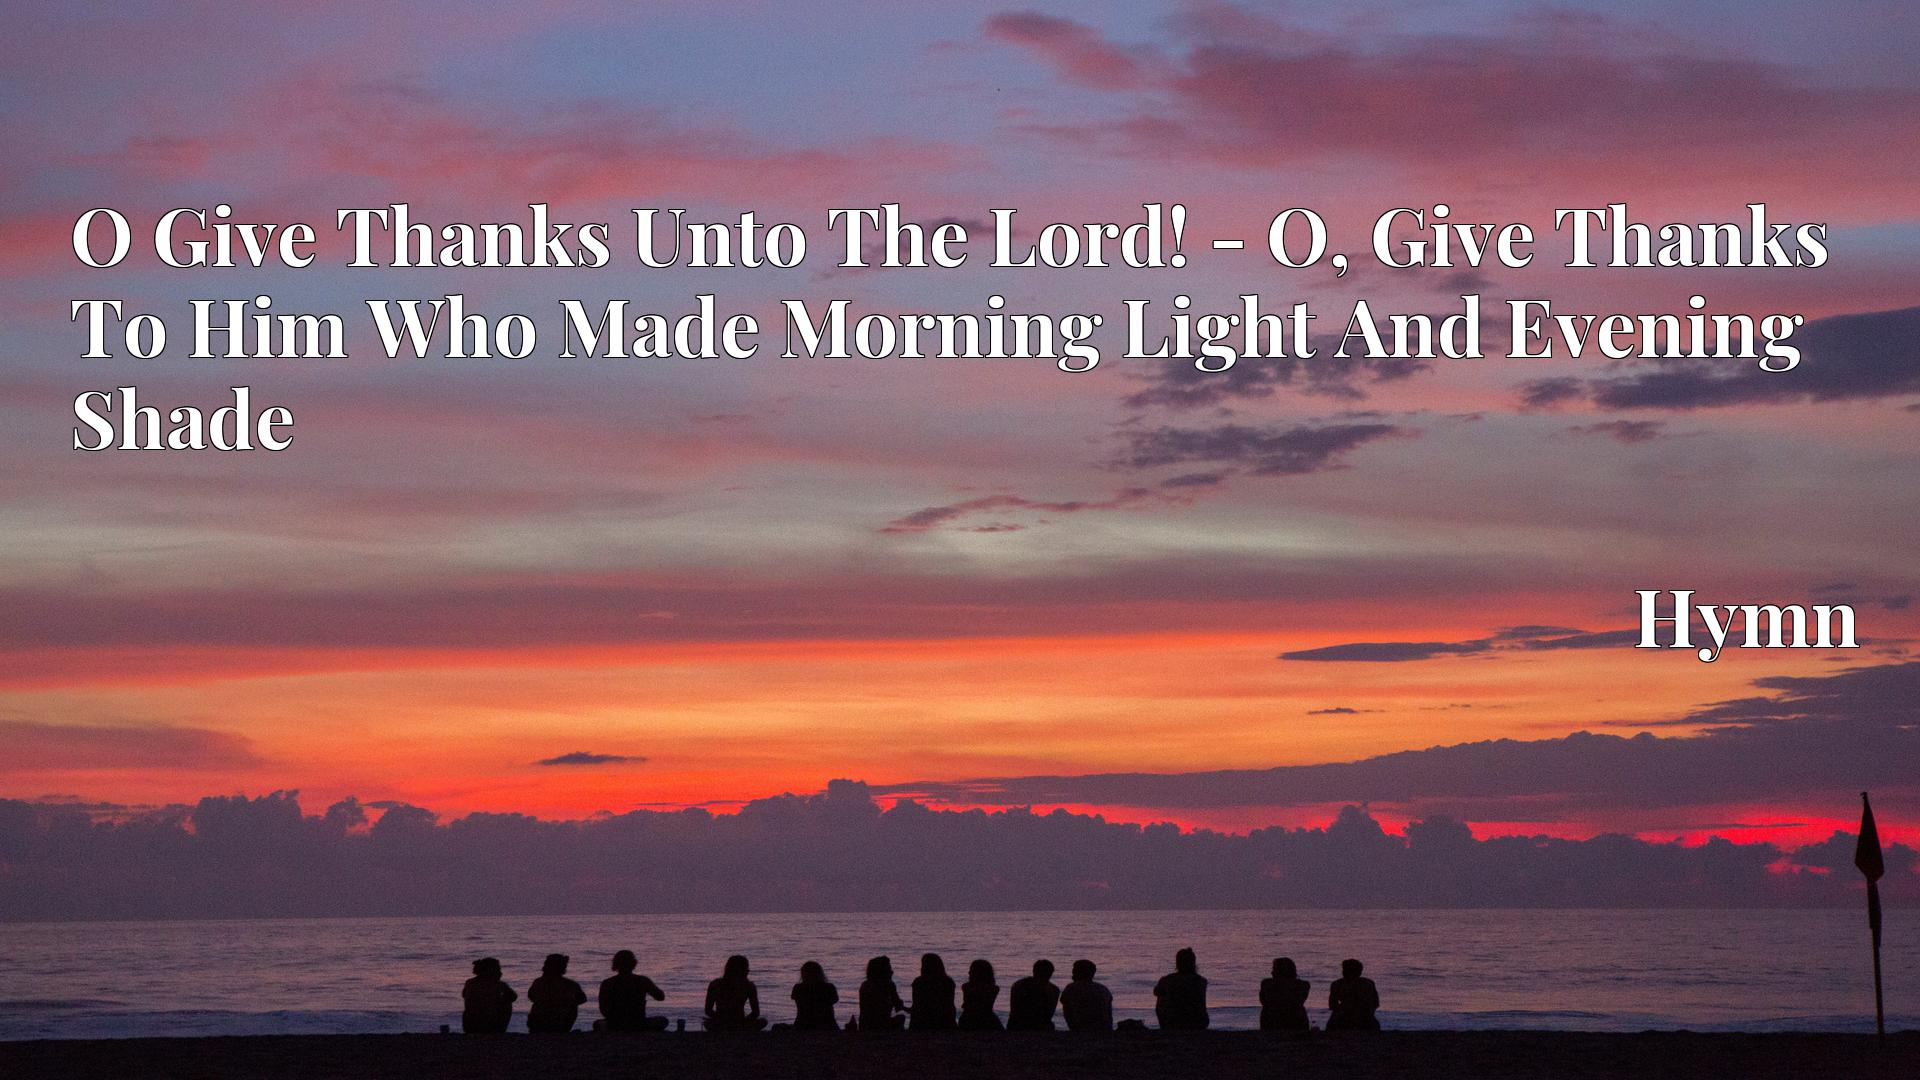 O Give Thanks Unto The Lord! - O, Give Thanks To Him Who Made Morning Light And Evening Shade - Hymn